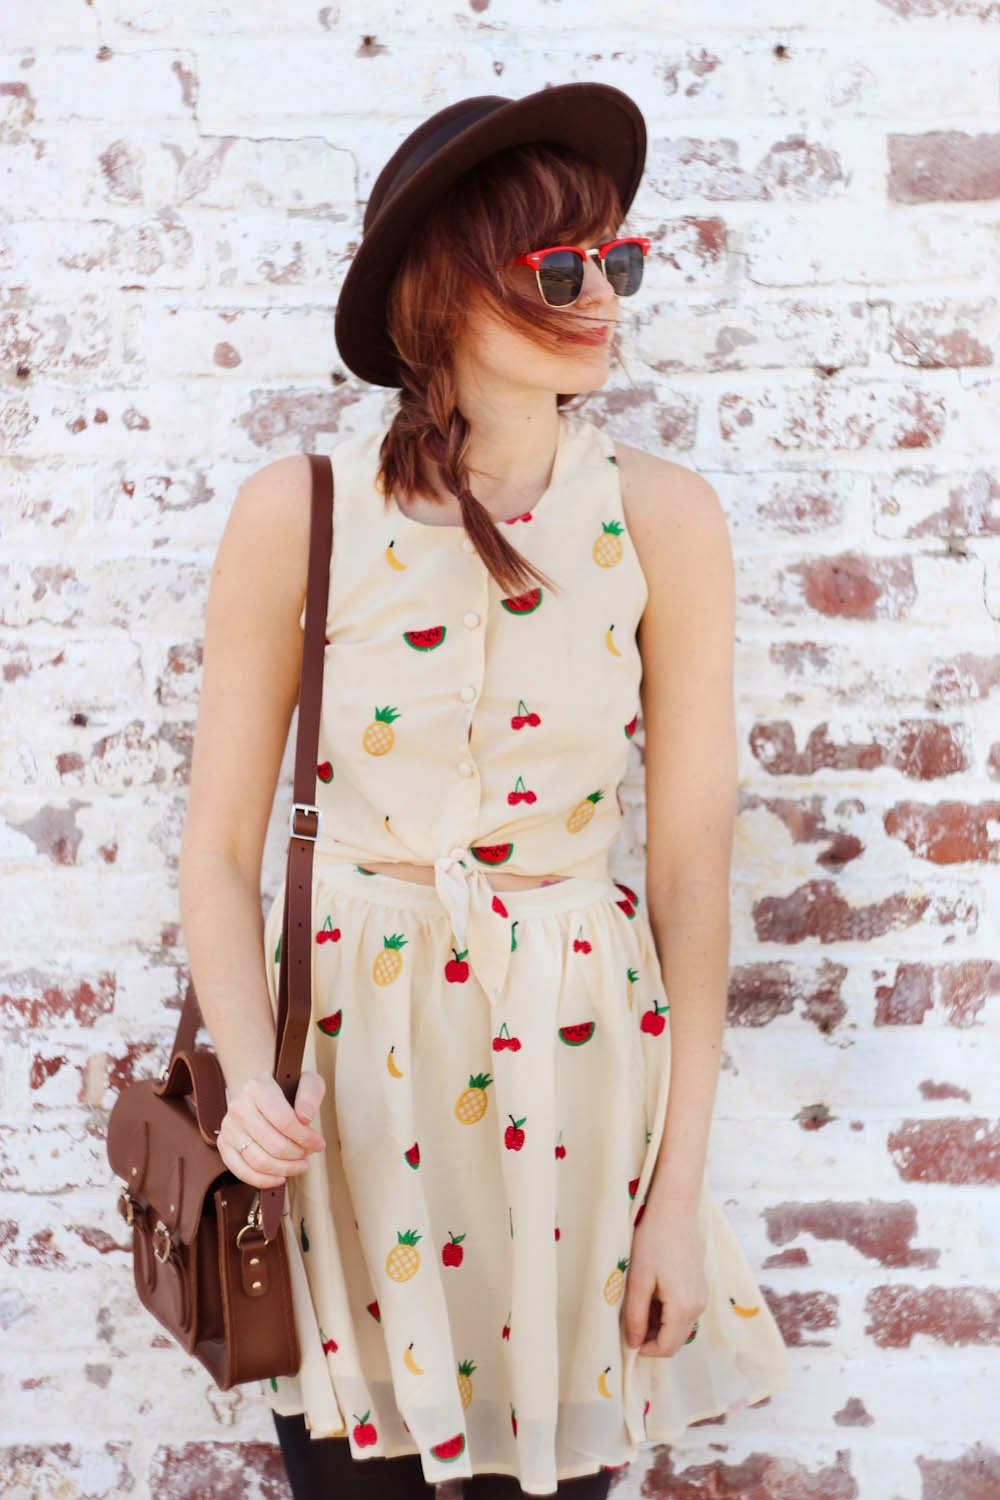 pepa loves fruit dress, nyc blog, nyc fashion blog, vintage fashion blog, nyc vintage blog, spring outfit, long beach ny